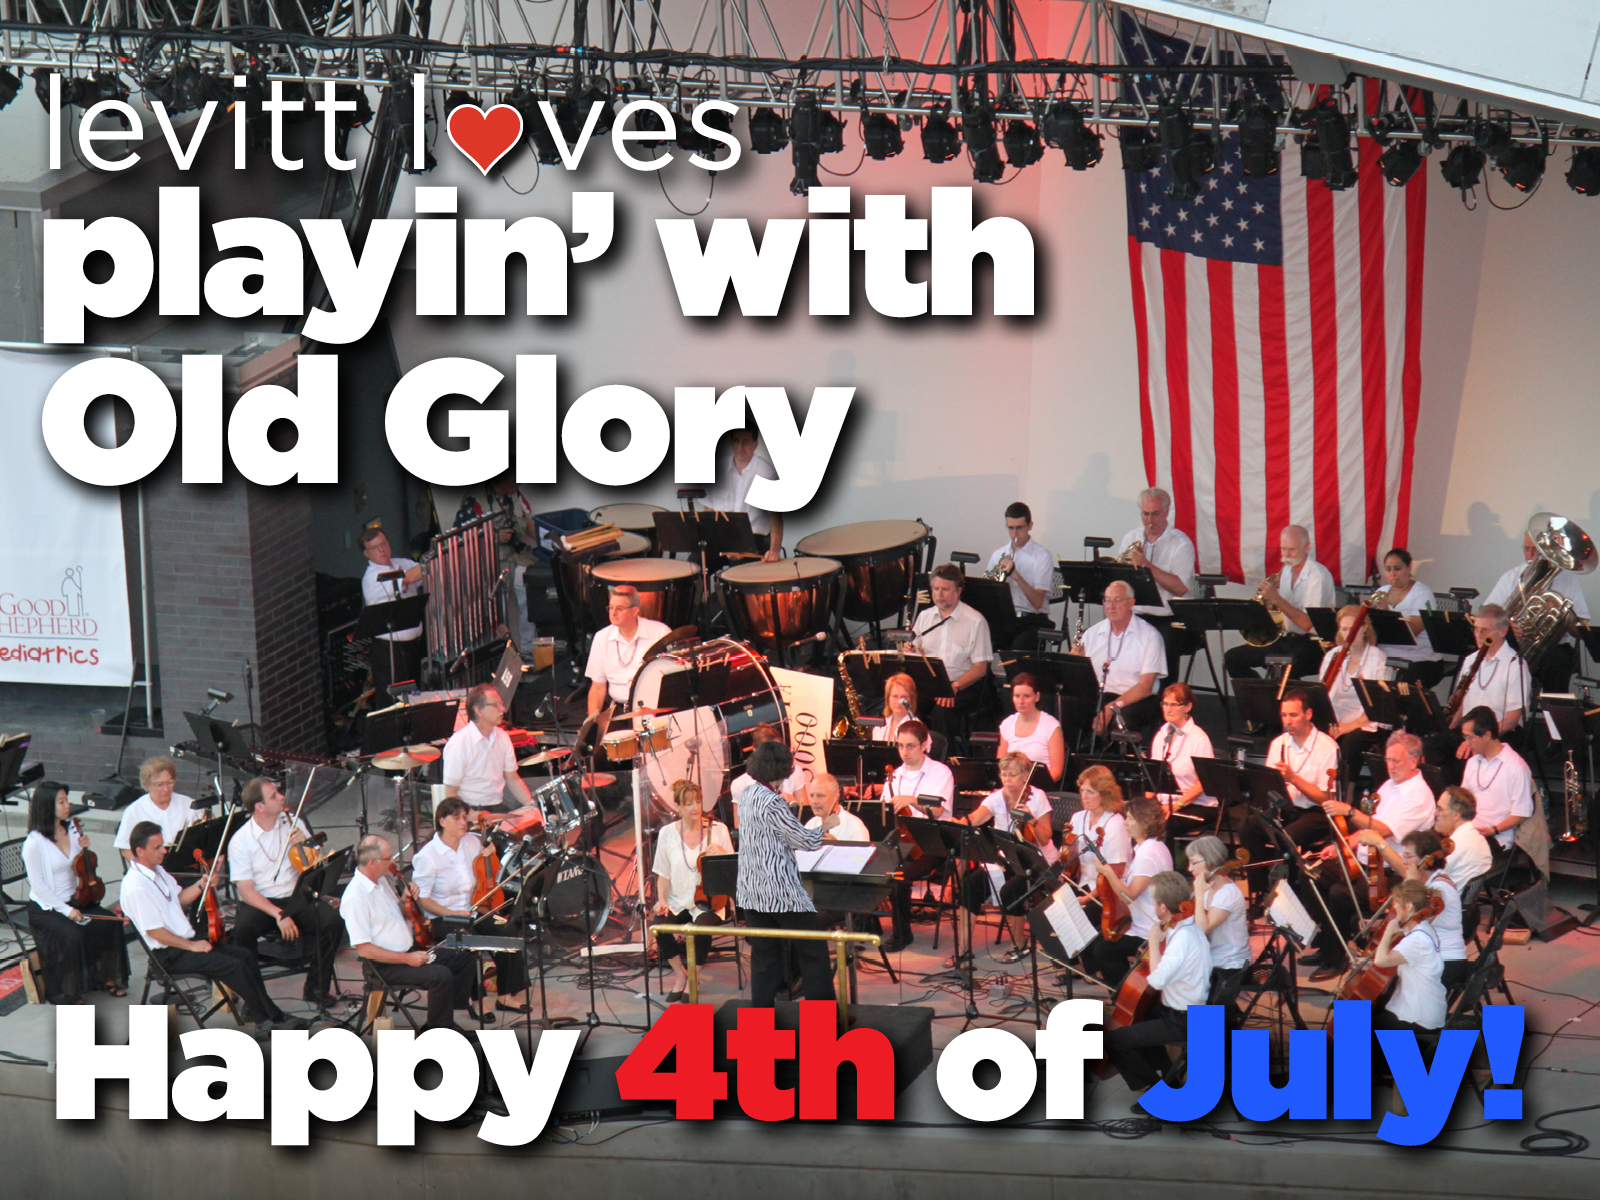 Levitt loves_July4